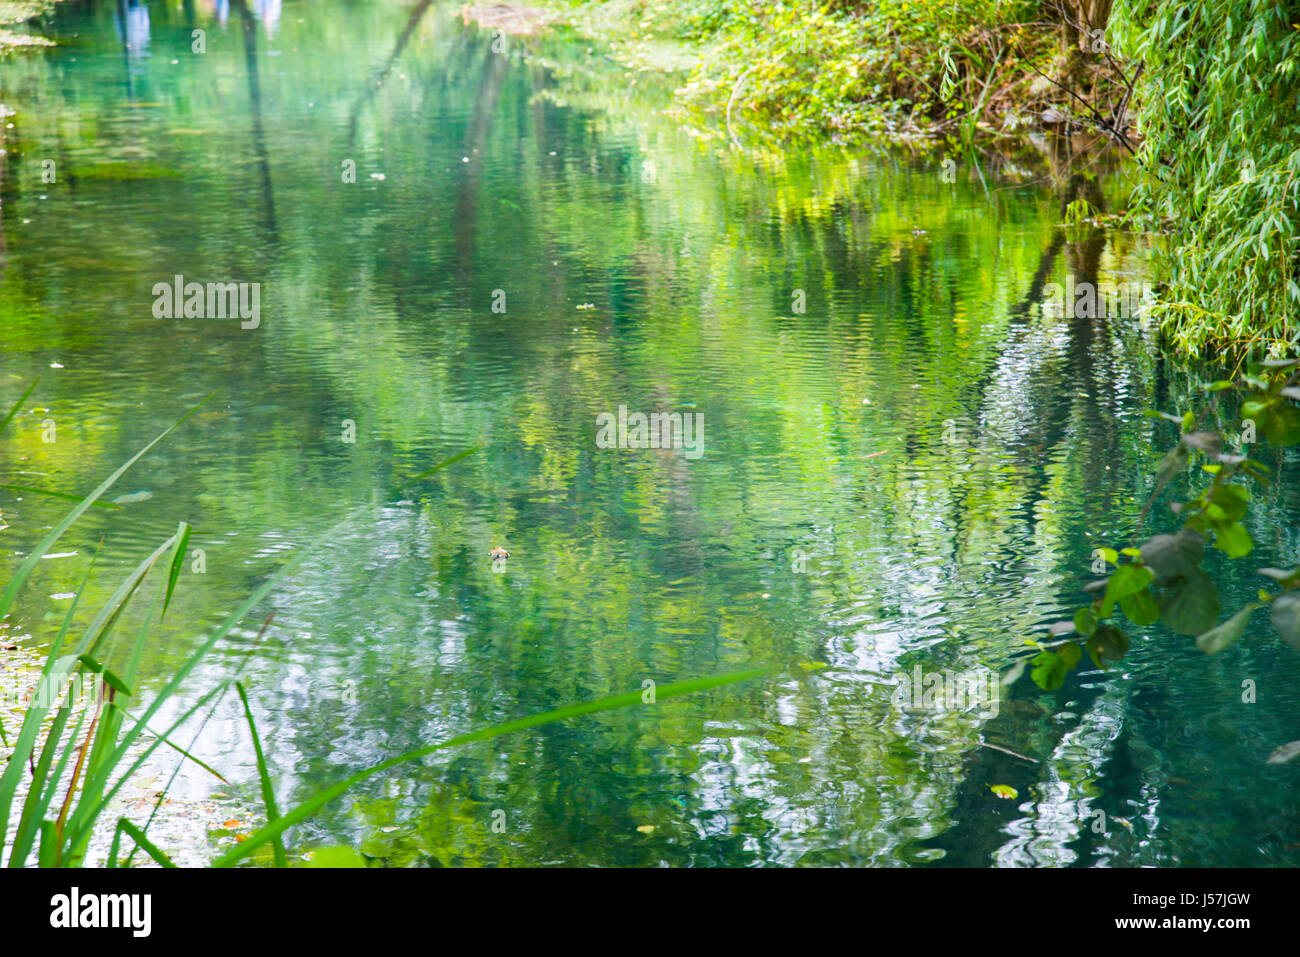 Reflections on water. - Stock Image